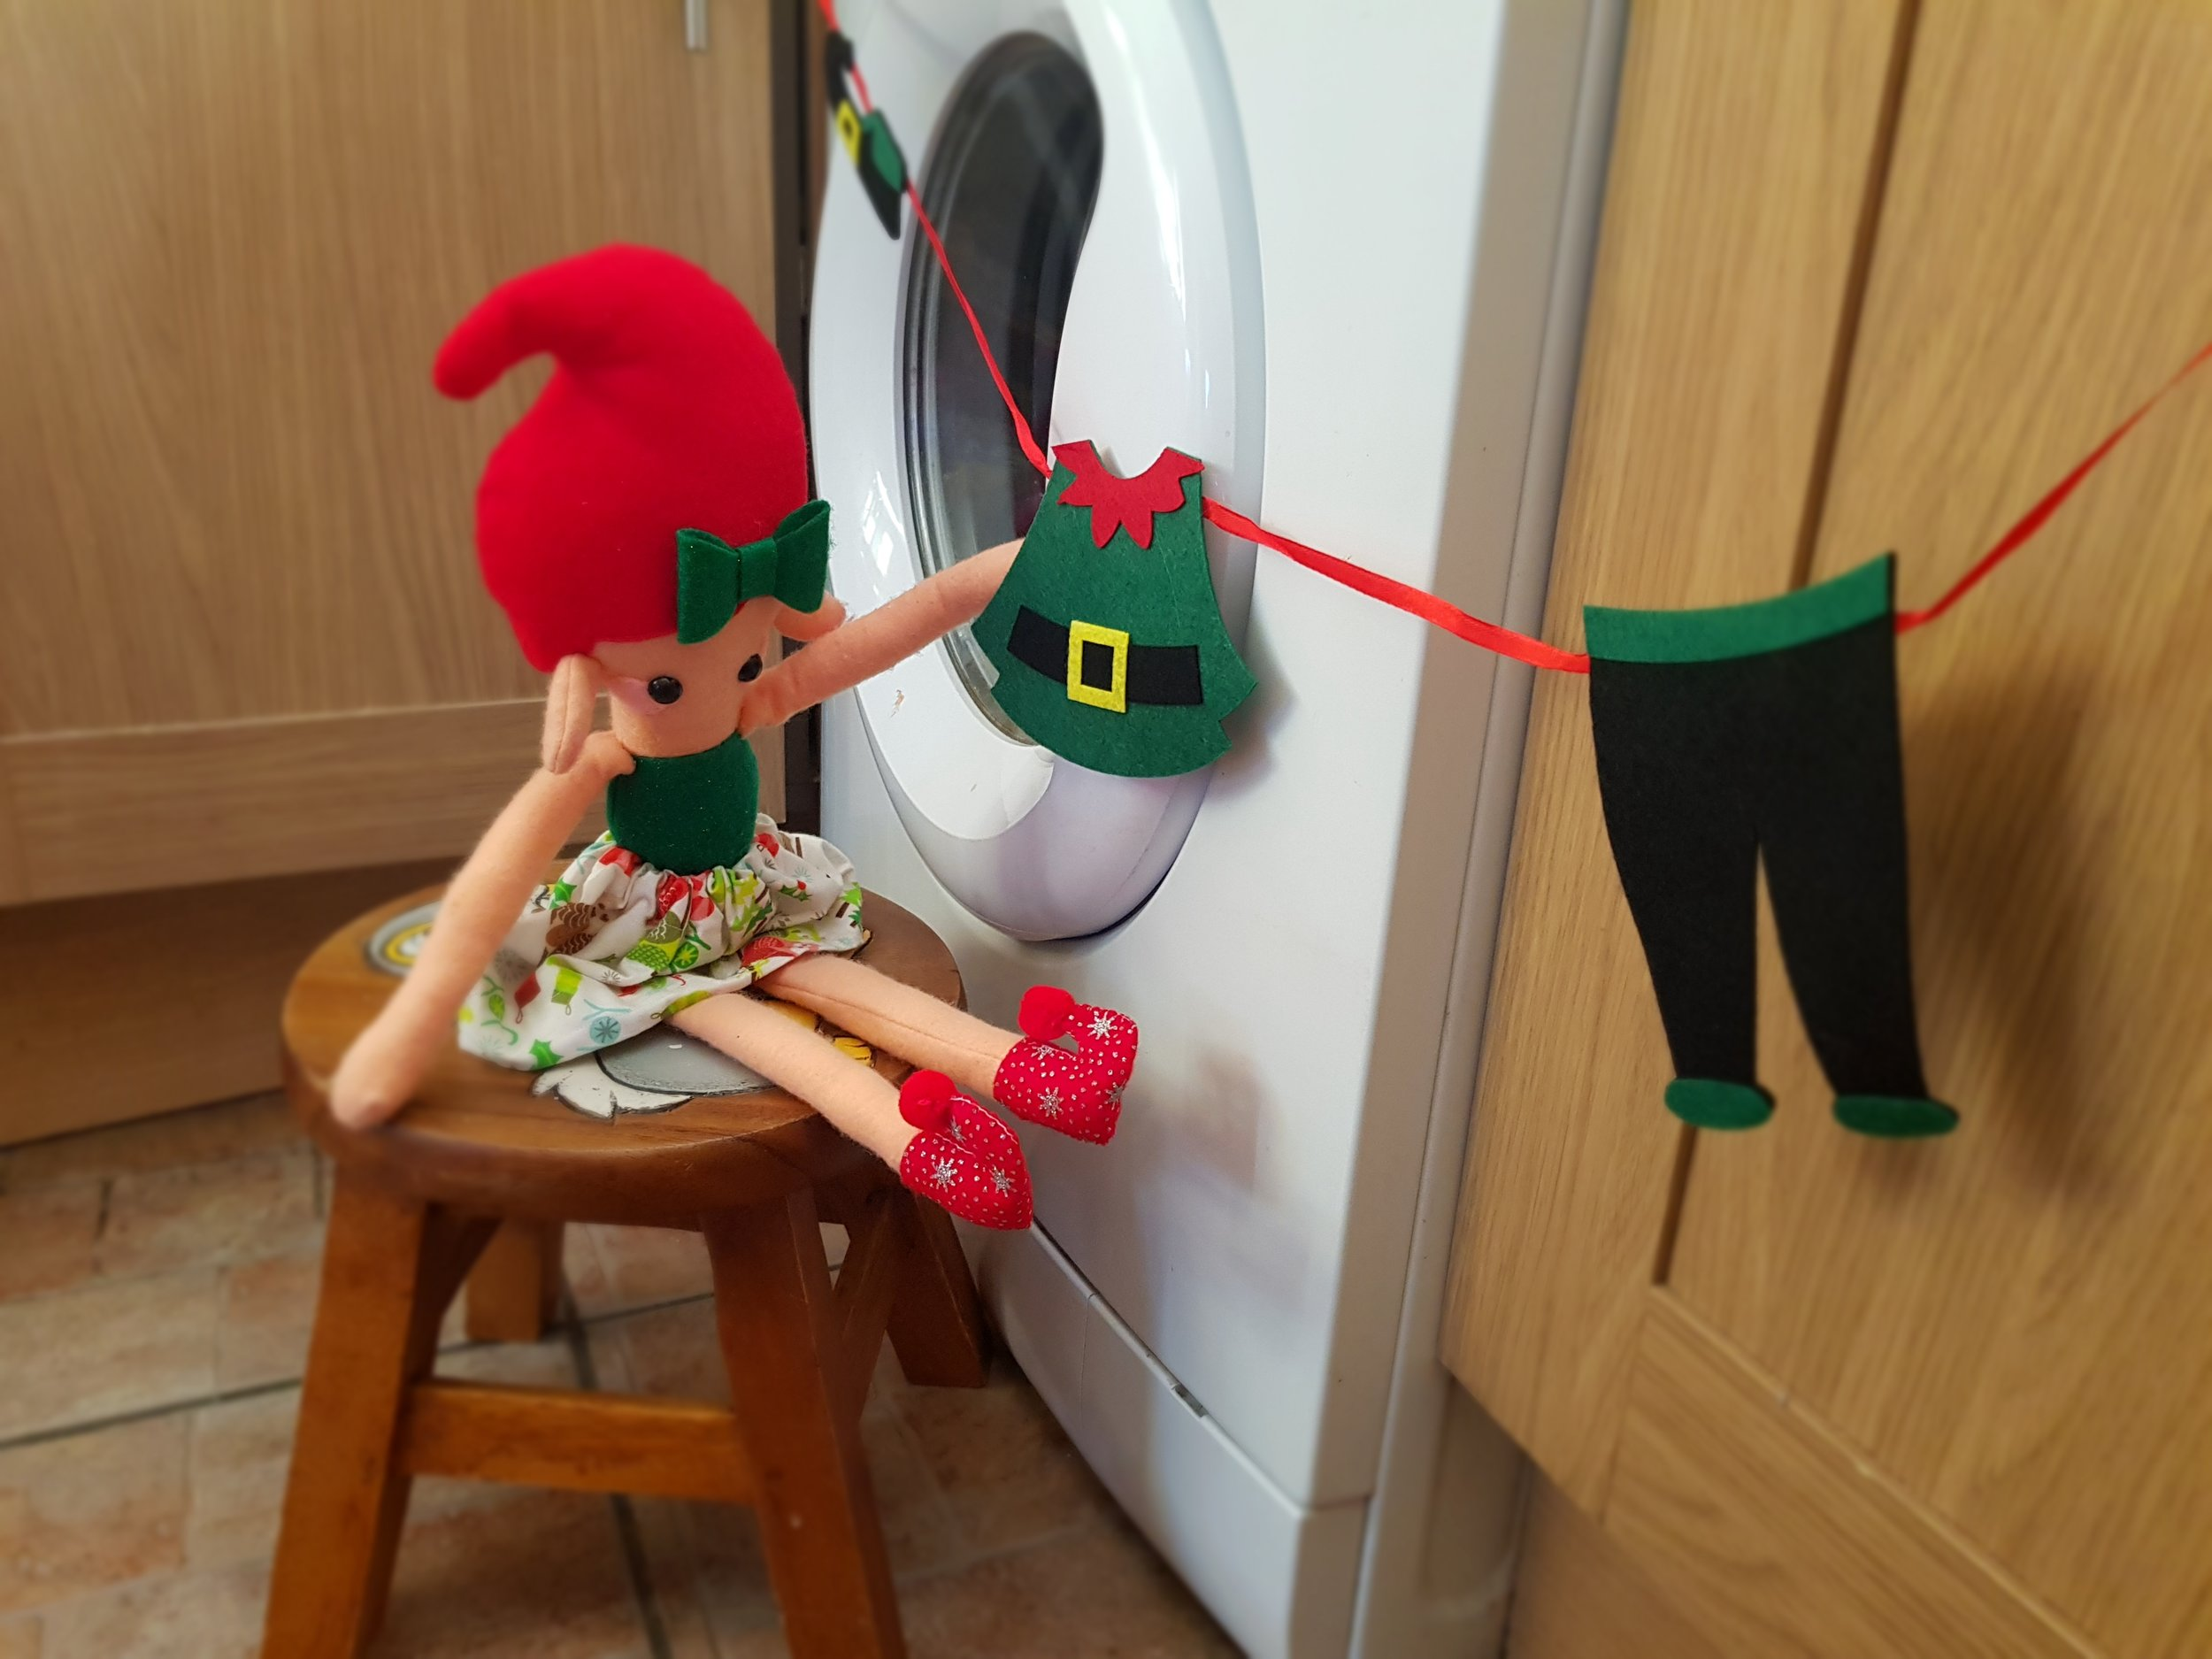 Elf on a Shelf December 6th Laundry Day